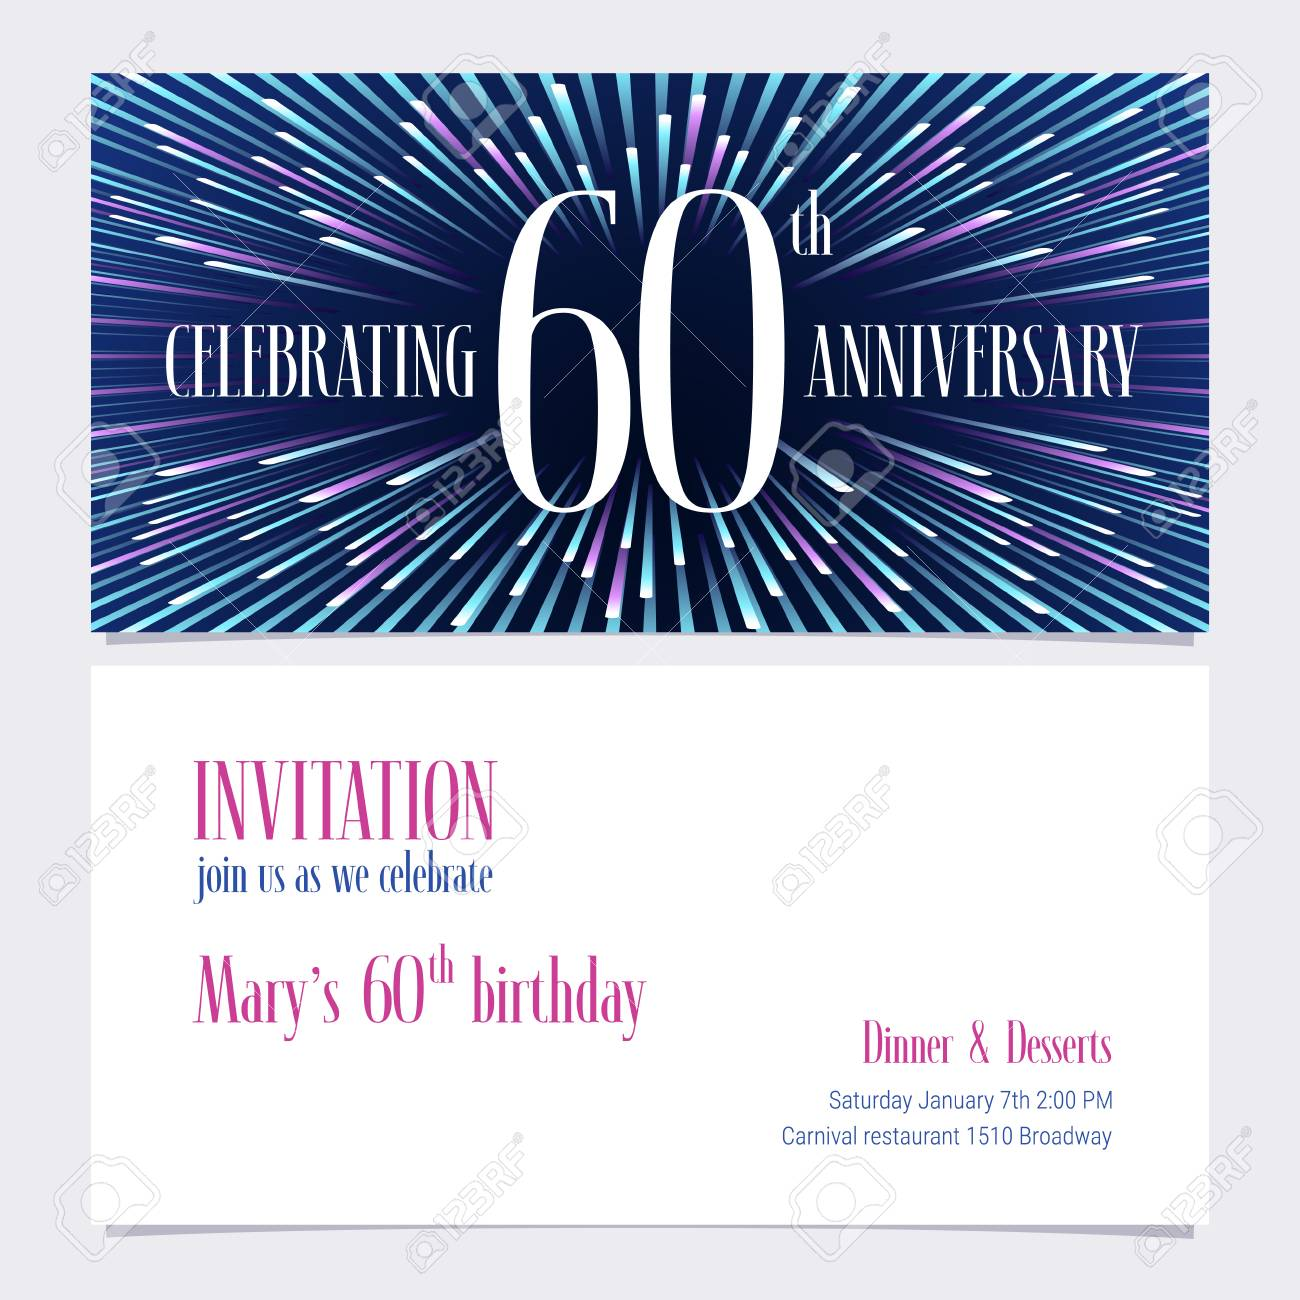 60 Years Anniversary Invitation Vector Illustration Design Element With Bright Abstract Background For 60th Birthday